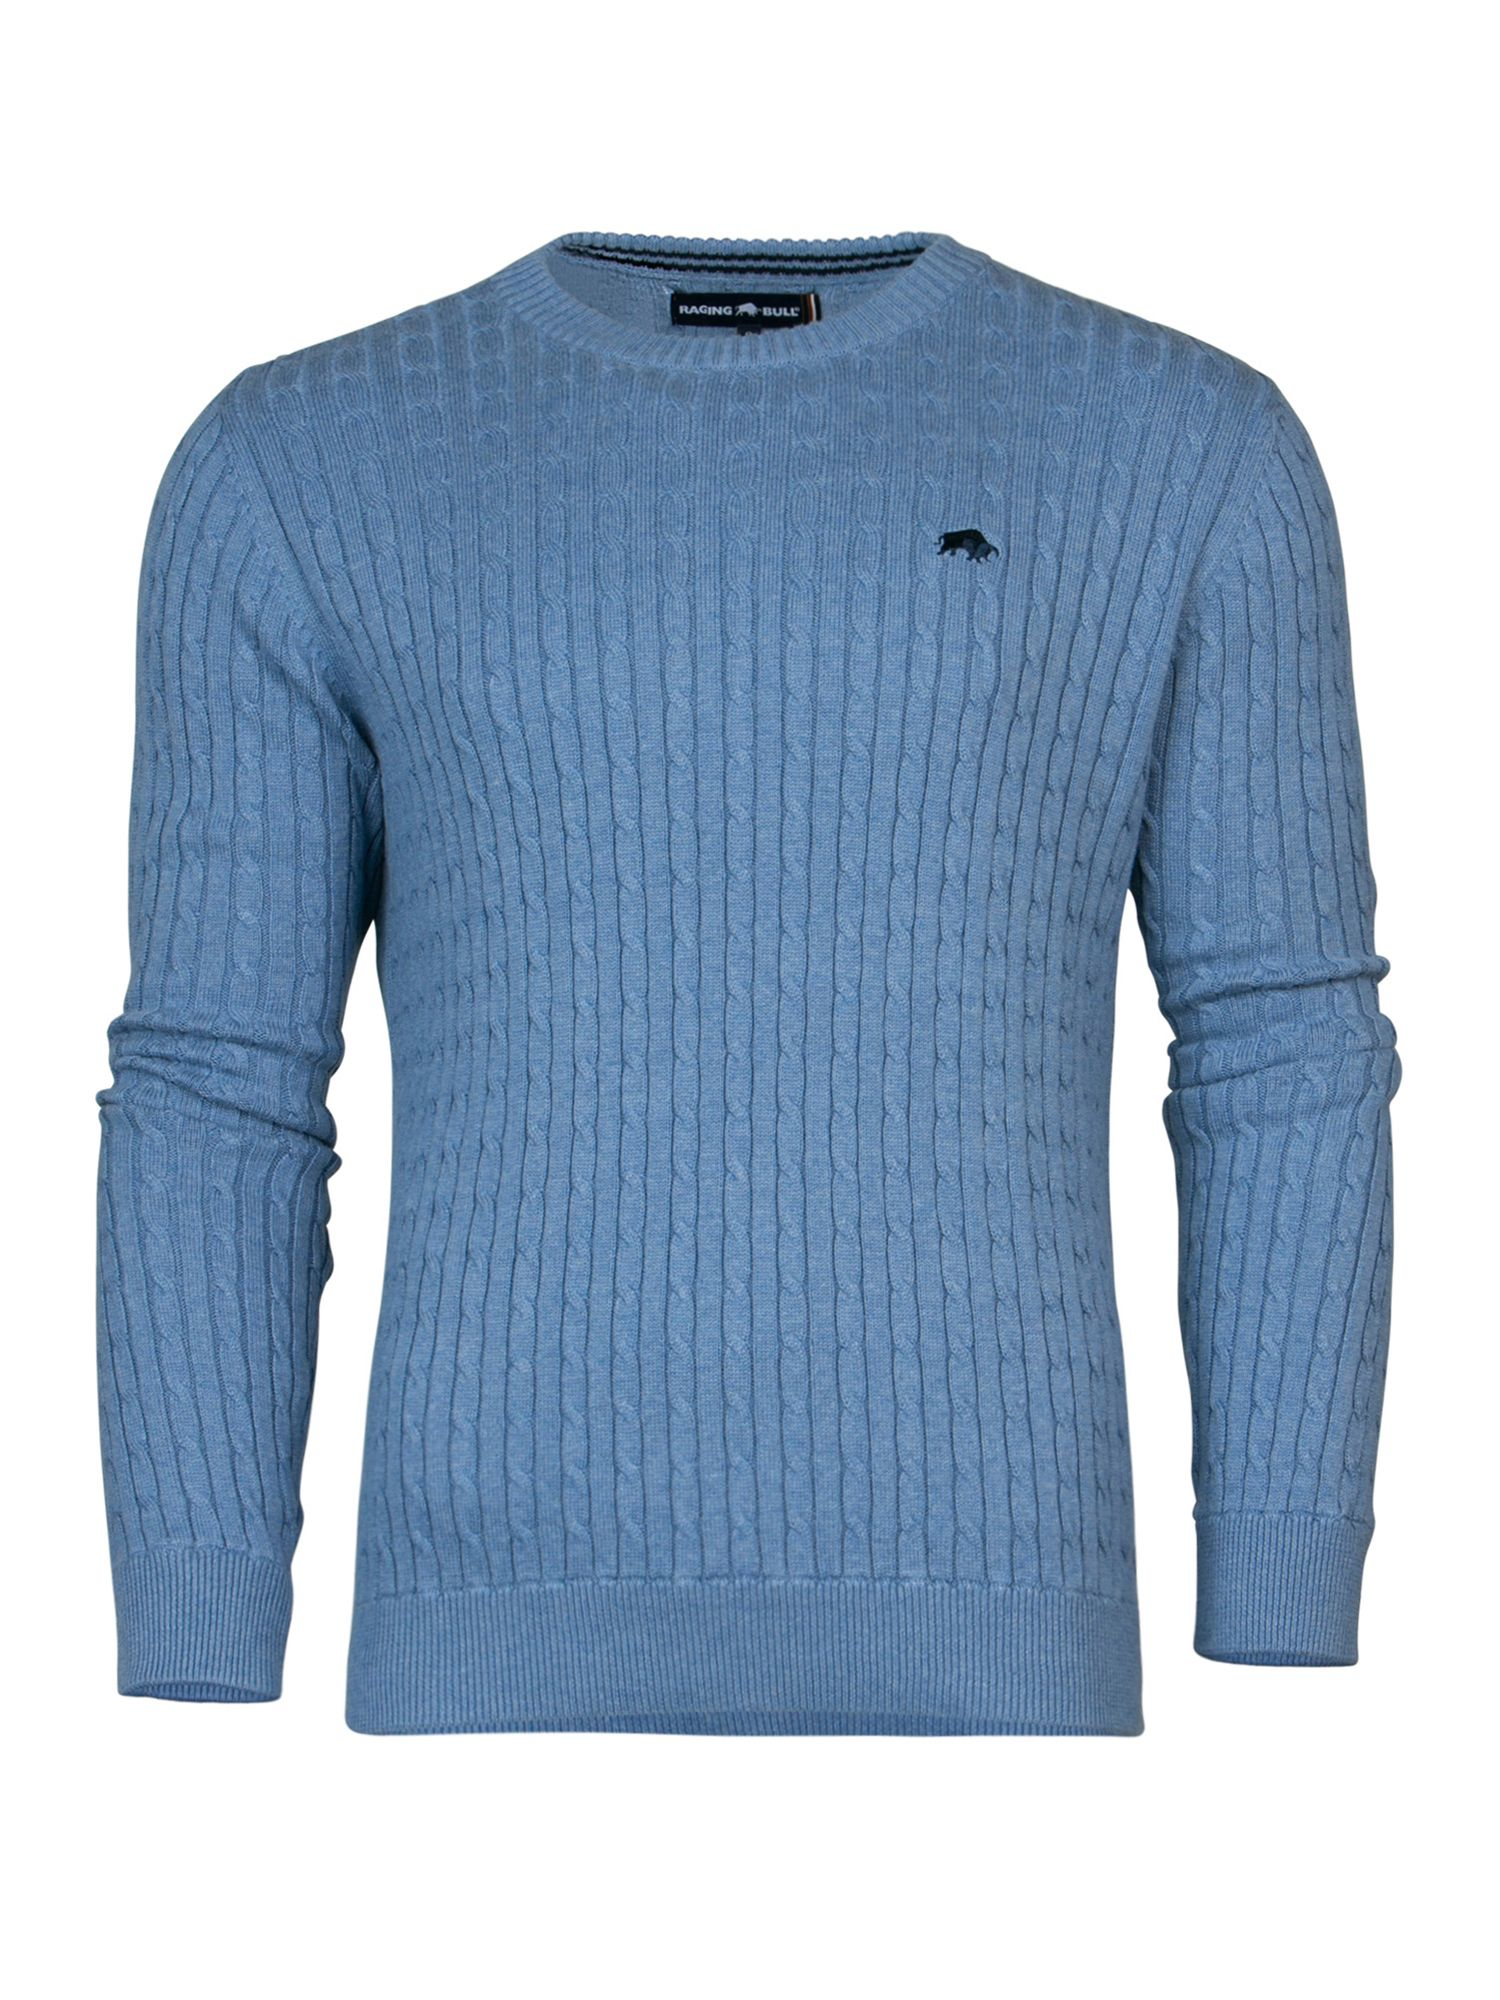 Nautica Fragrances Coffret Nautica Mens Cable Knit Crew-Neck Pullover Sweater. Sold by Tags Weekly. $ TopTie Men's V-Neck Cotton Cable Knit Sweater Vest Slim Fit Casual Waistcoat. Sold by Bidlessnow. $ $ - $